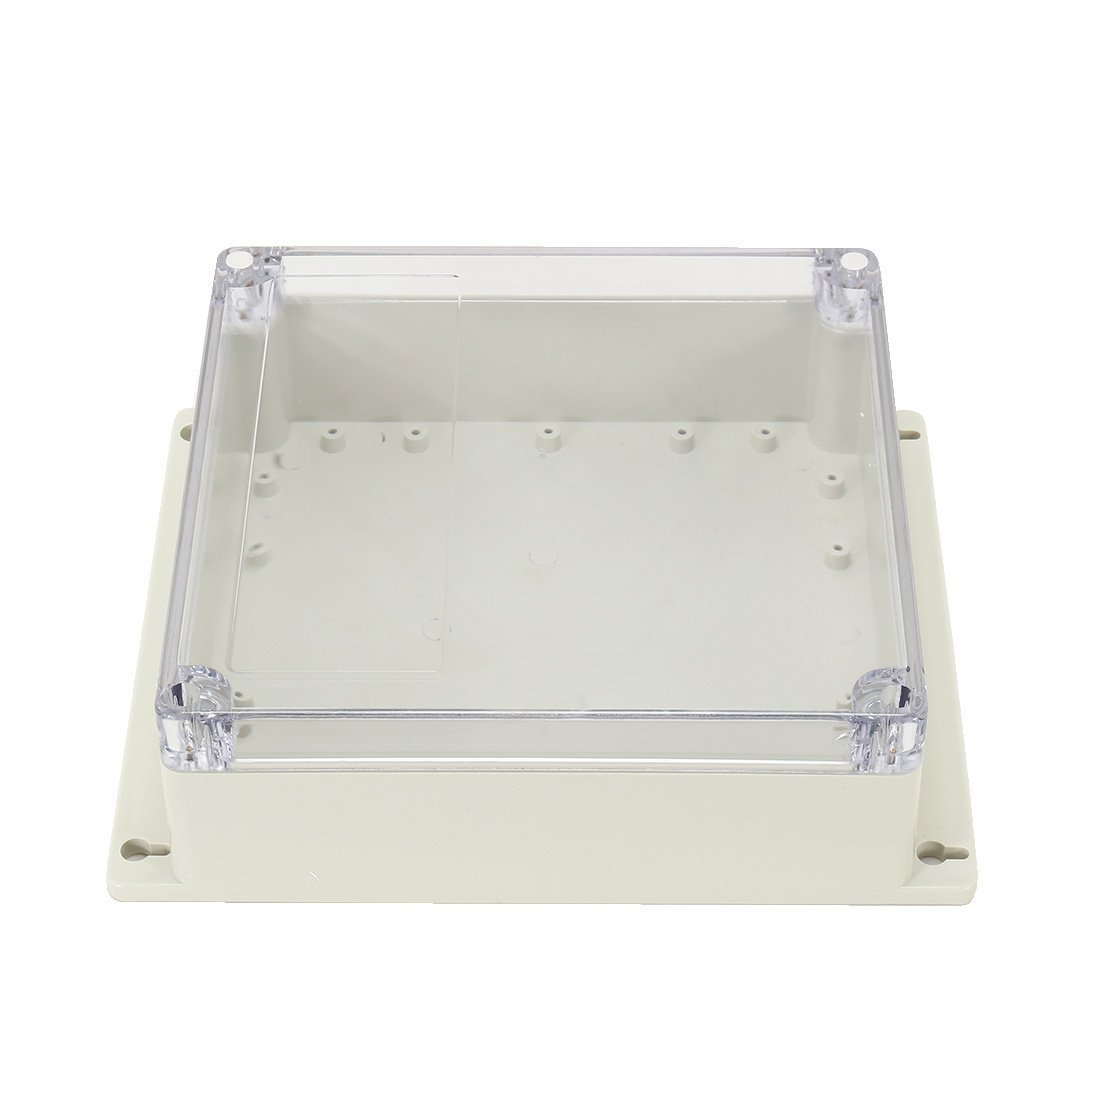 SODIAL 7.6 inch x7.4 inch x2.8 inch (192mmx188mmx70mm) ABS Junction Box Universal Project Enclosure w PC Transparent Cover